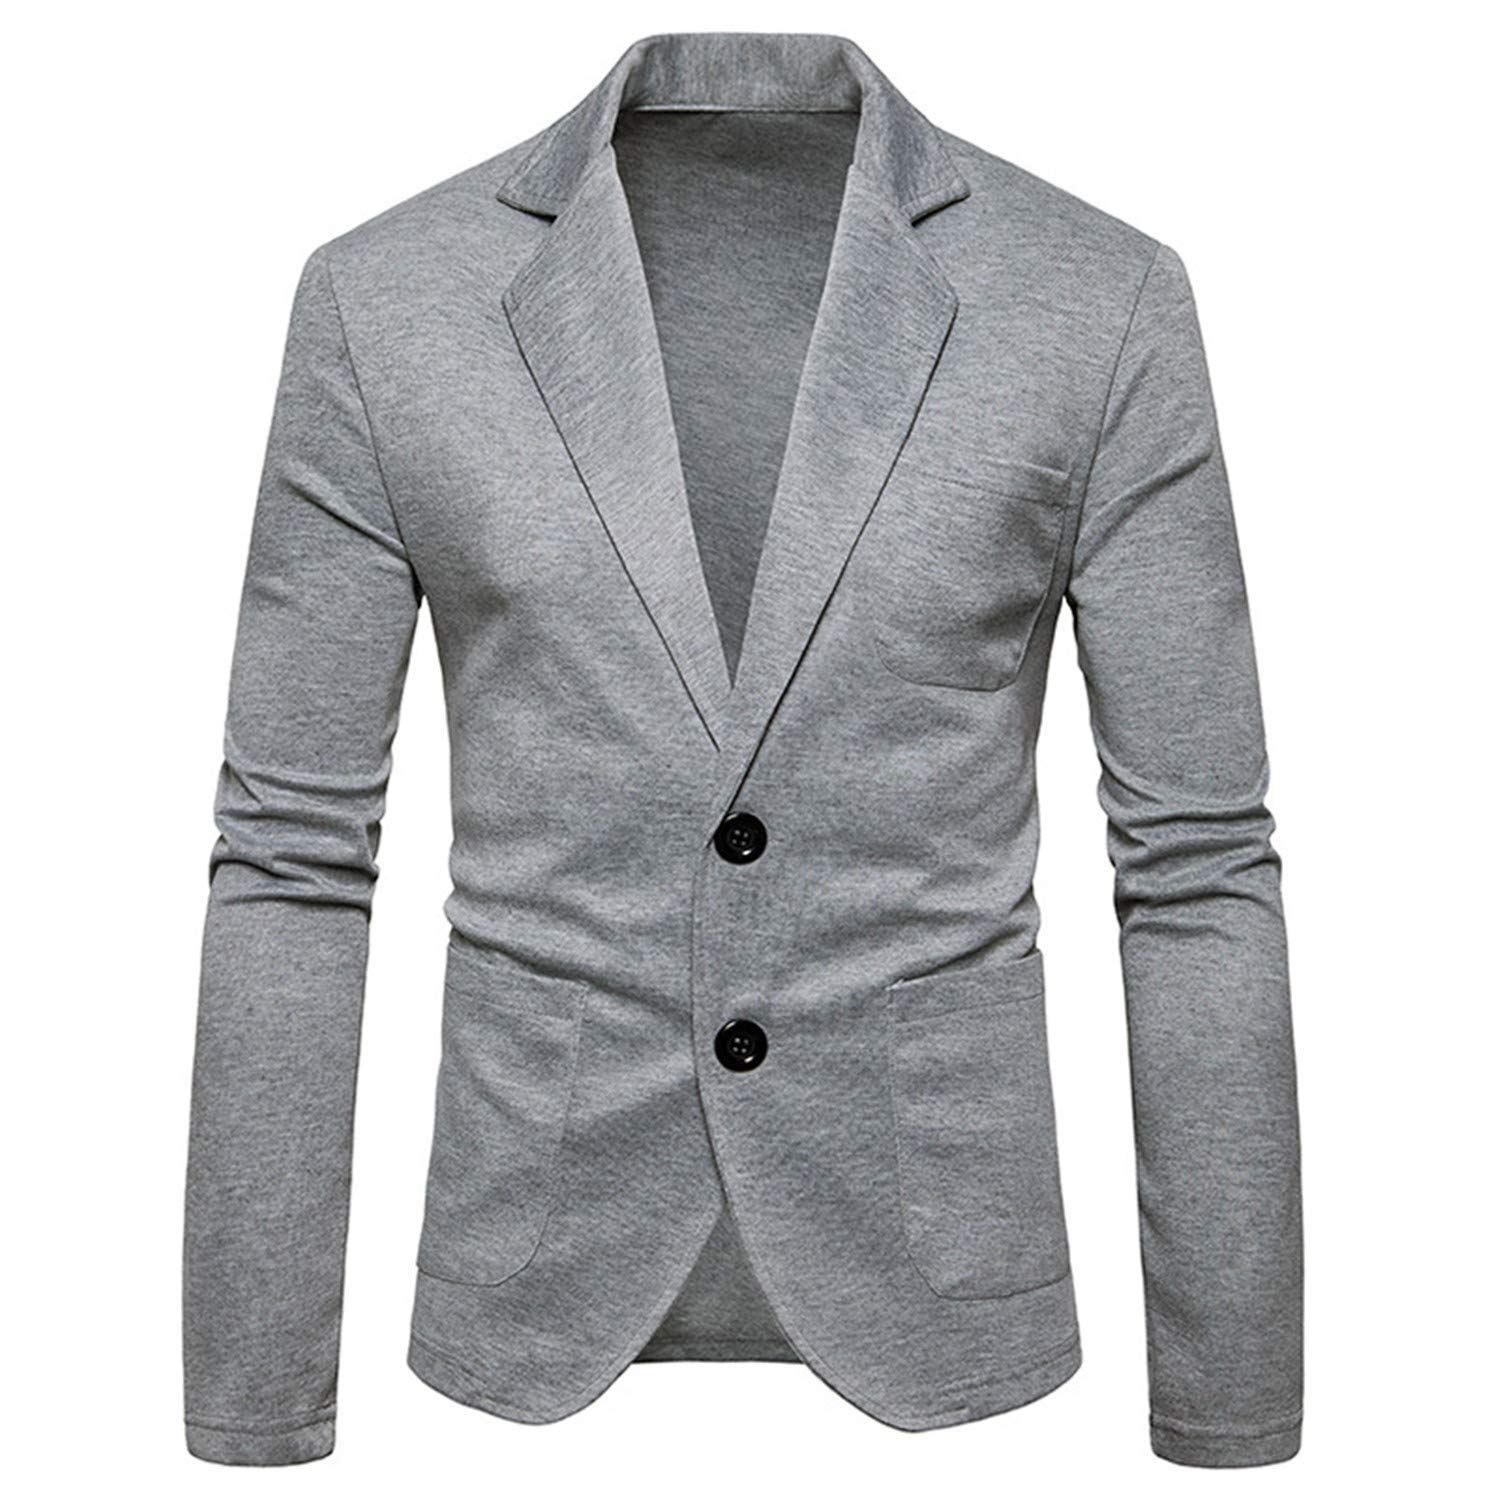 Mens Knitting Suits Blazers Casual Slim Fit Single Breasted Two Button Suit Blazer Jacket Men Terno Masculino 2XL at Amazon Mens Clothing store: